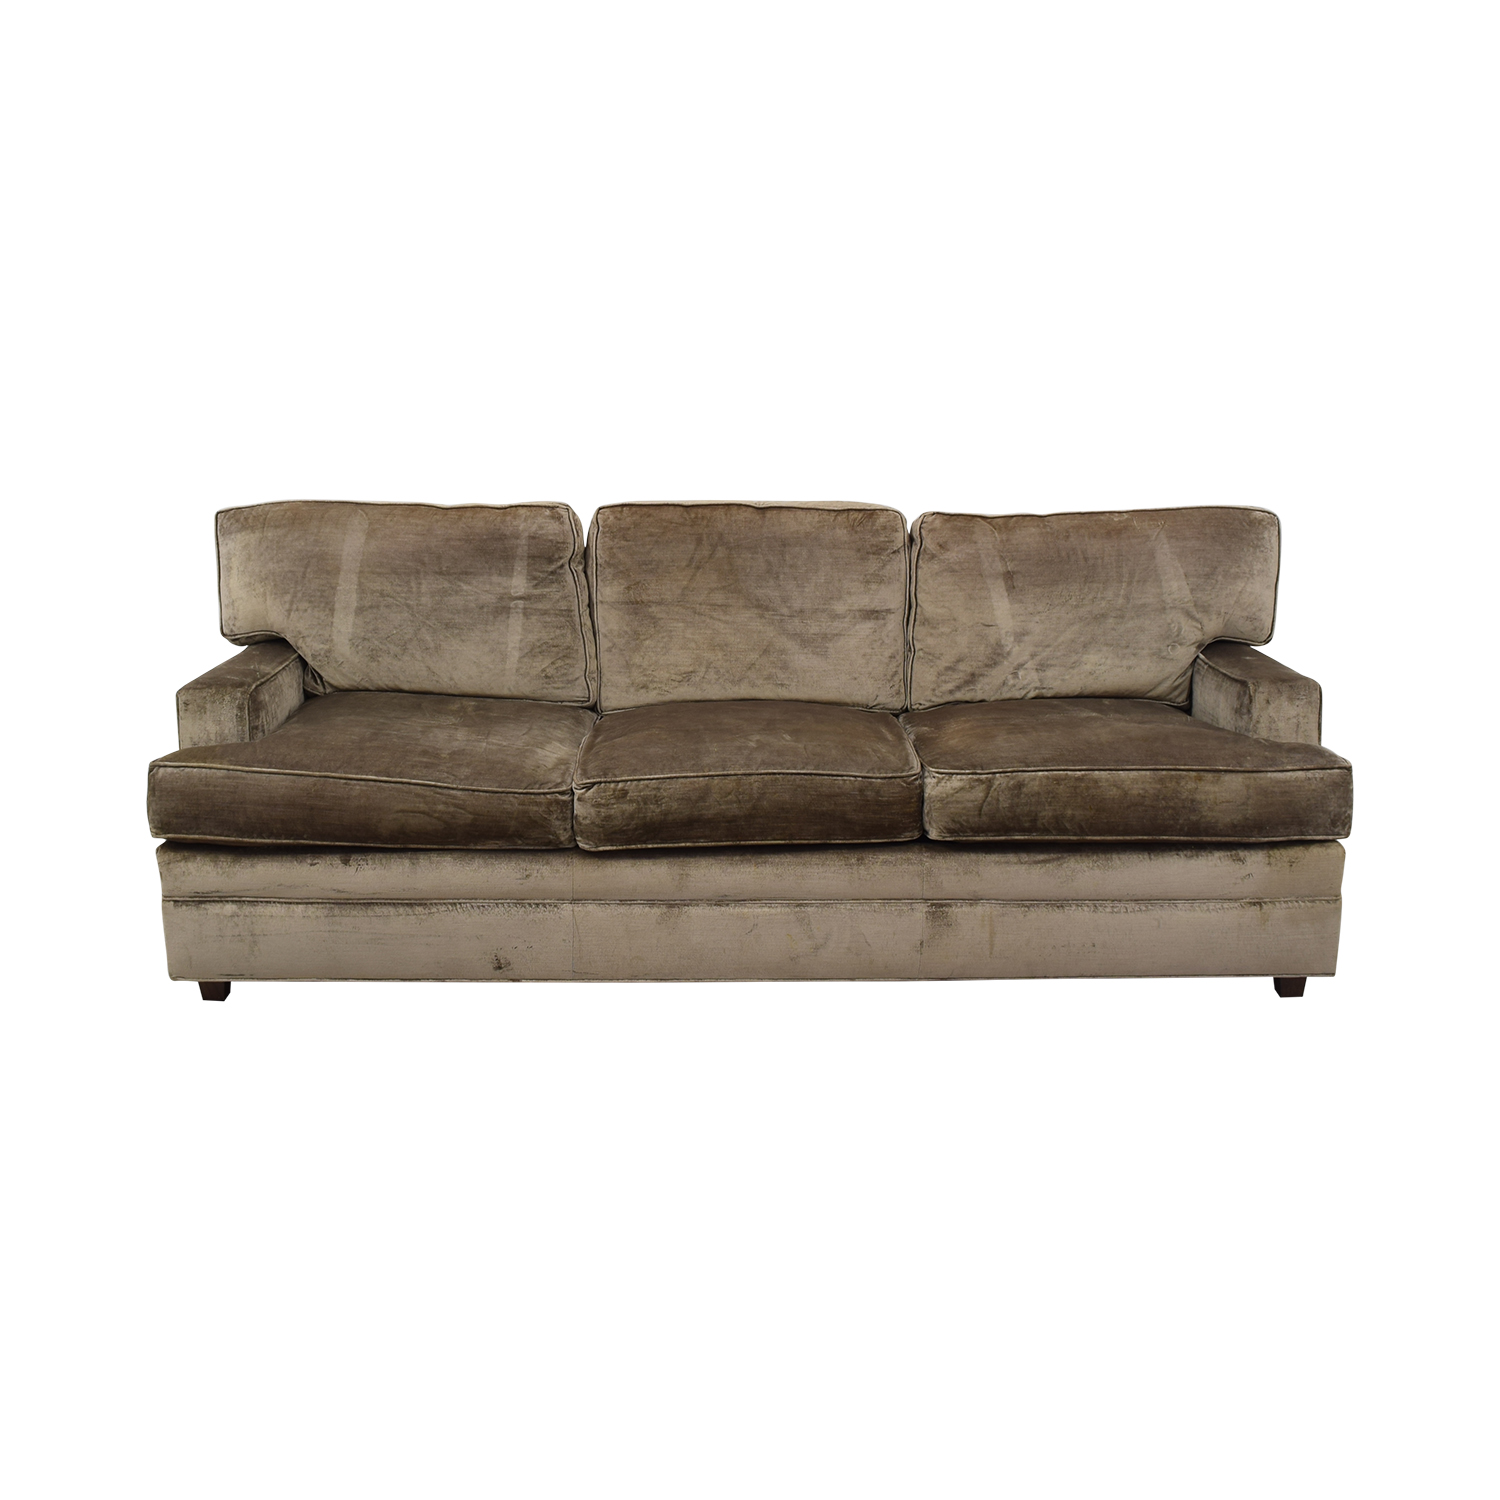 Pearson Pearson Three Cushion Sofa Classic Sofas